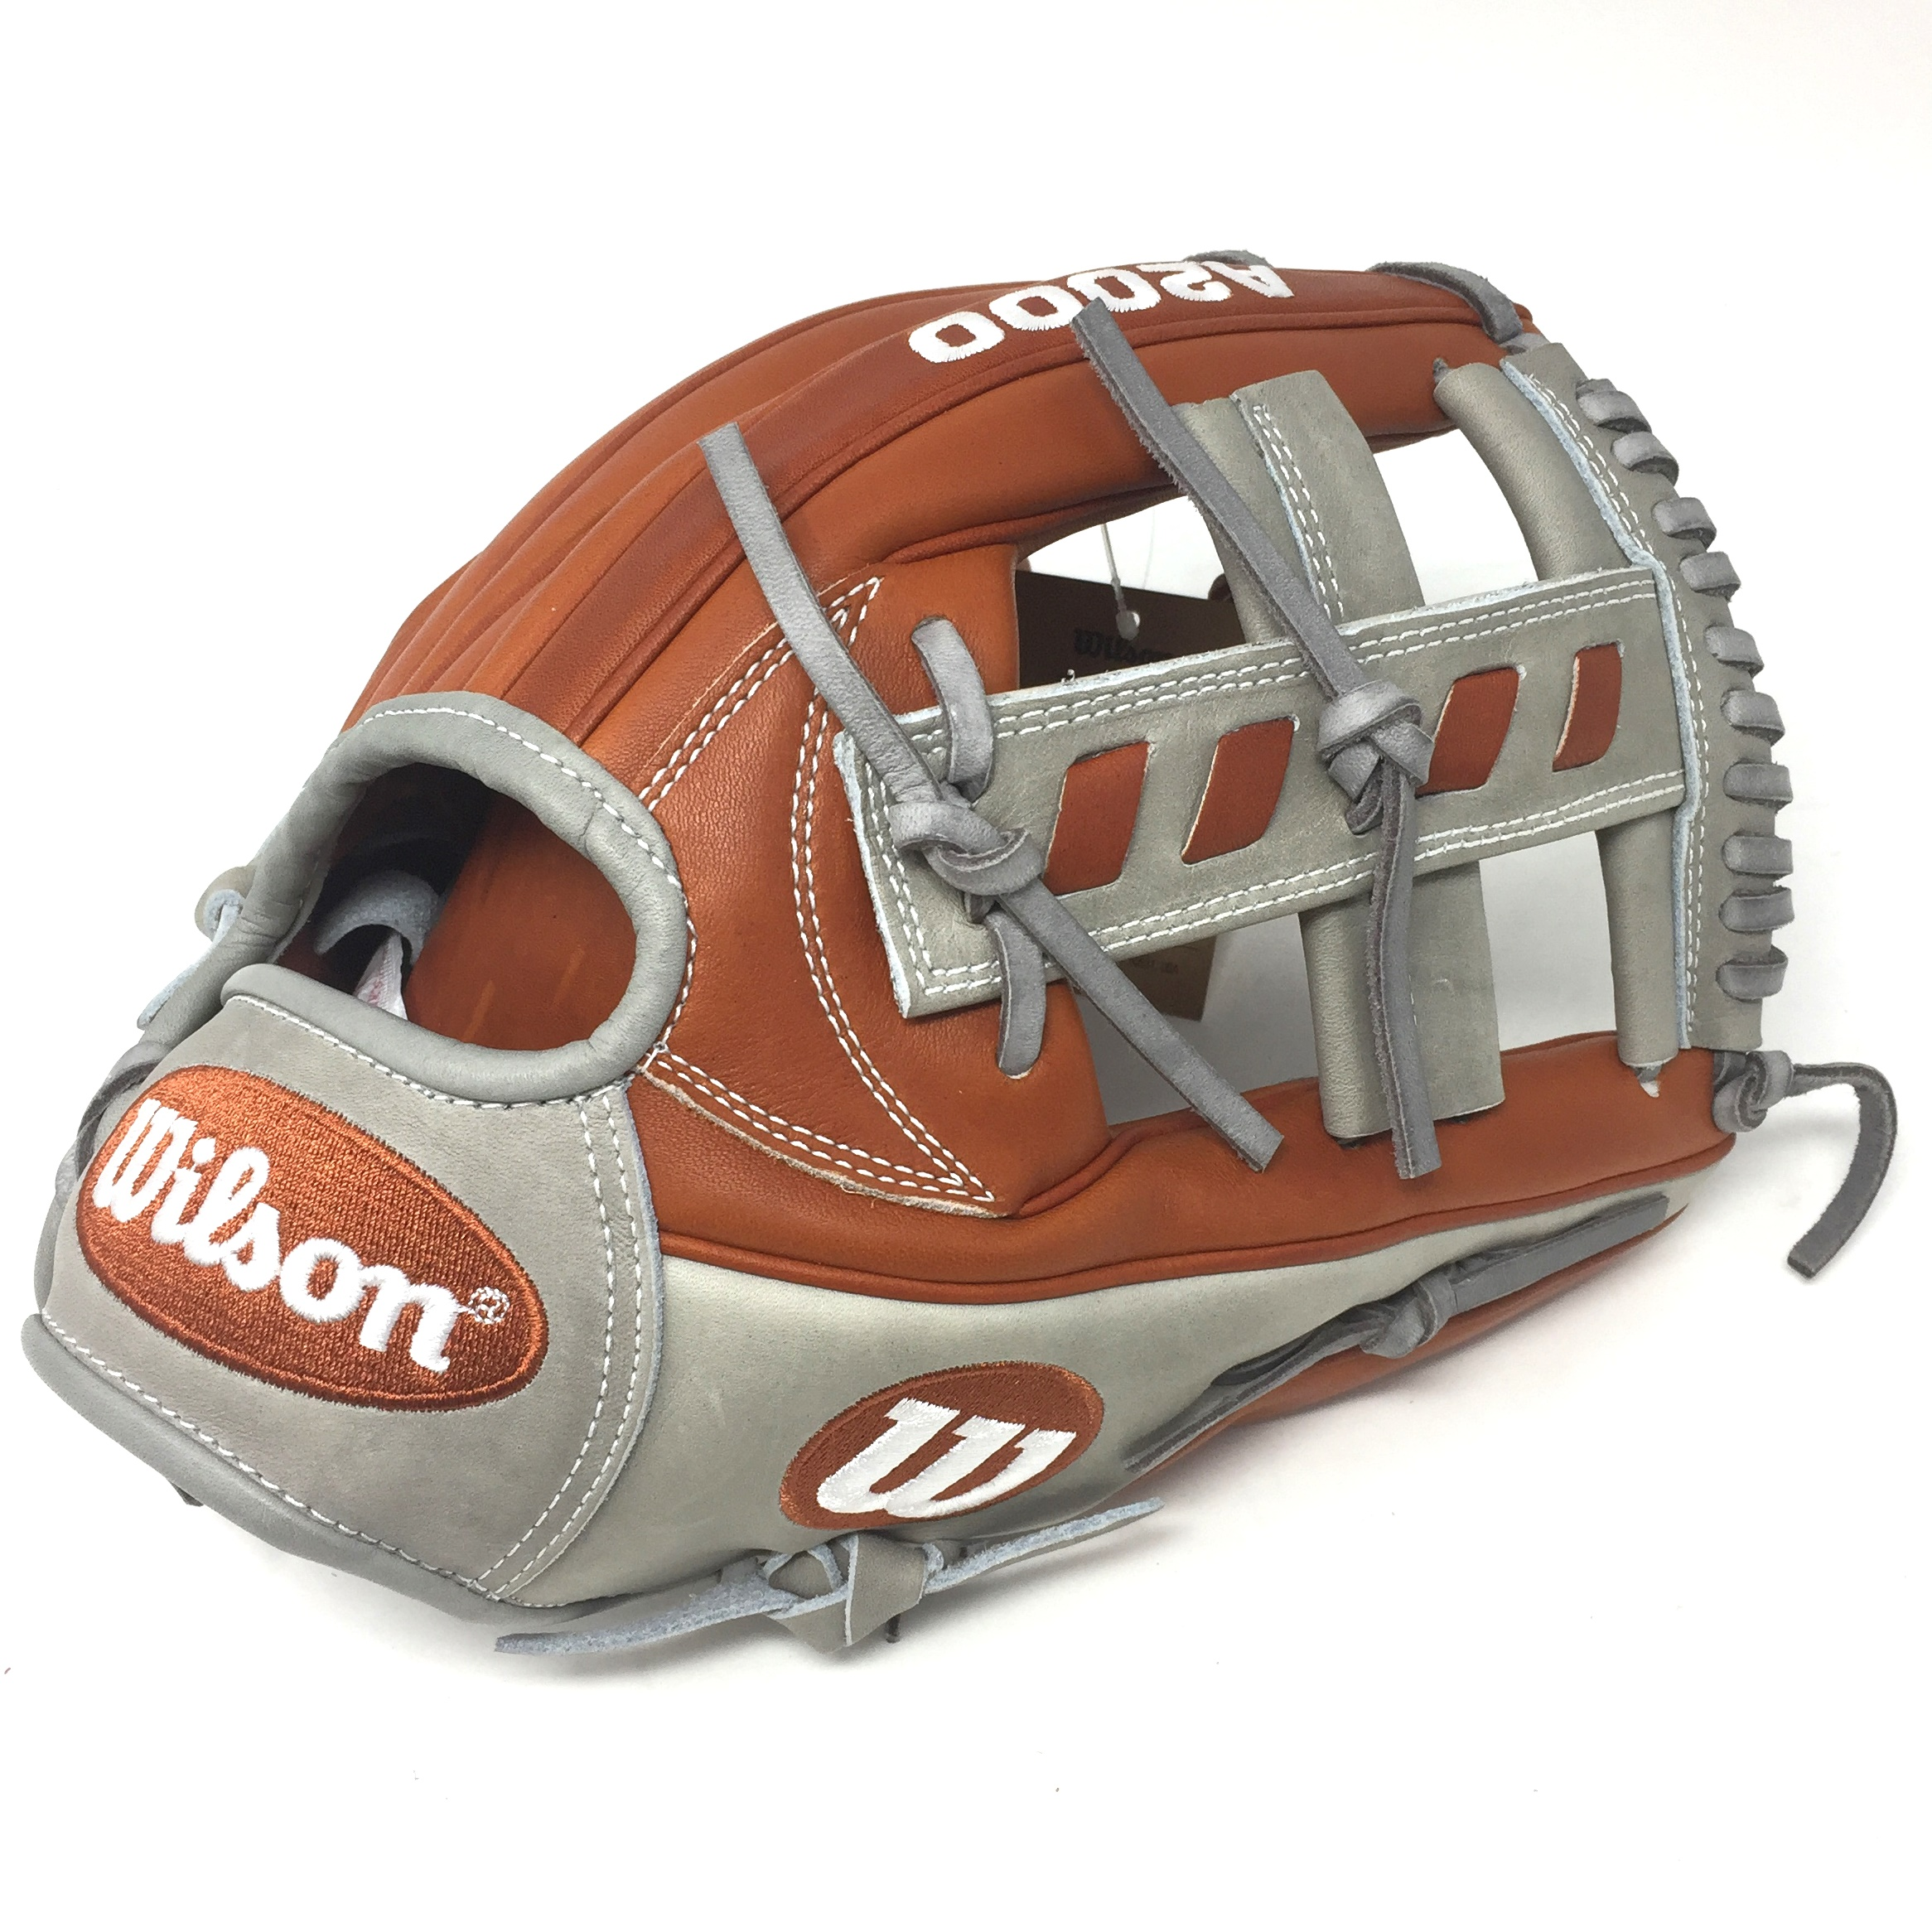 wilson-a2000-baseball-glove-may-gotm-1716-11-5-right-hand-throw WTA20RB19LEMAY-RightHandThrow Wilson 887768824389 Wilson A2000 Baseball Glove of the month for May 2019. Single